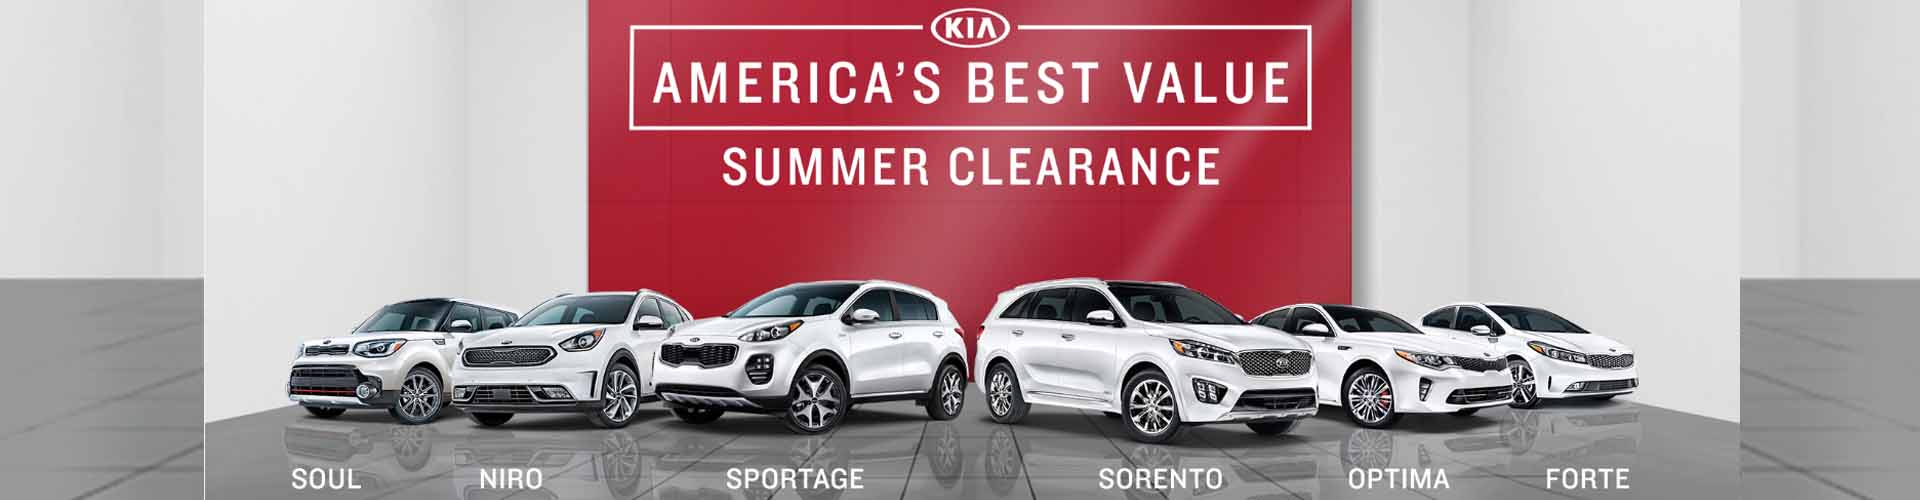 KIA America's Best Value Sales Event